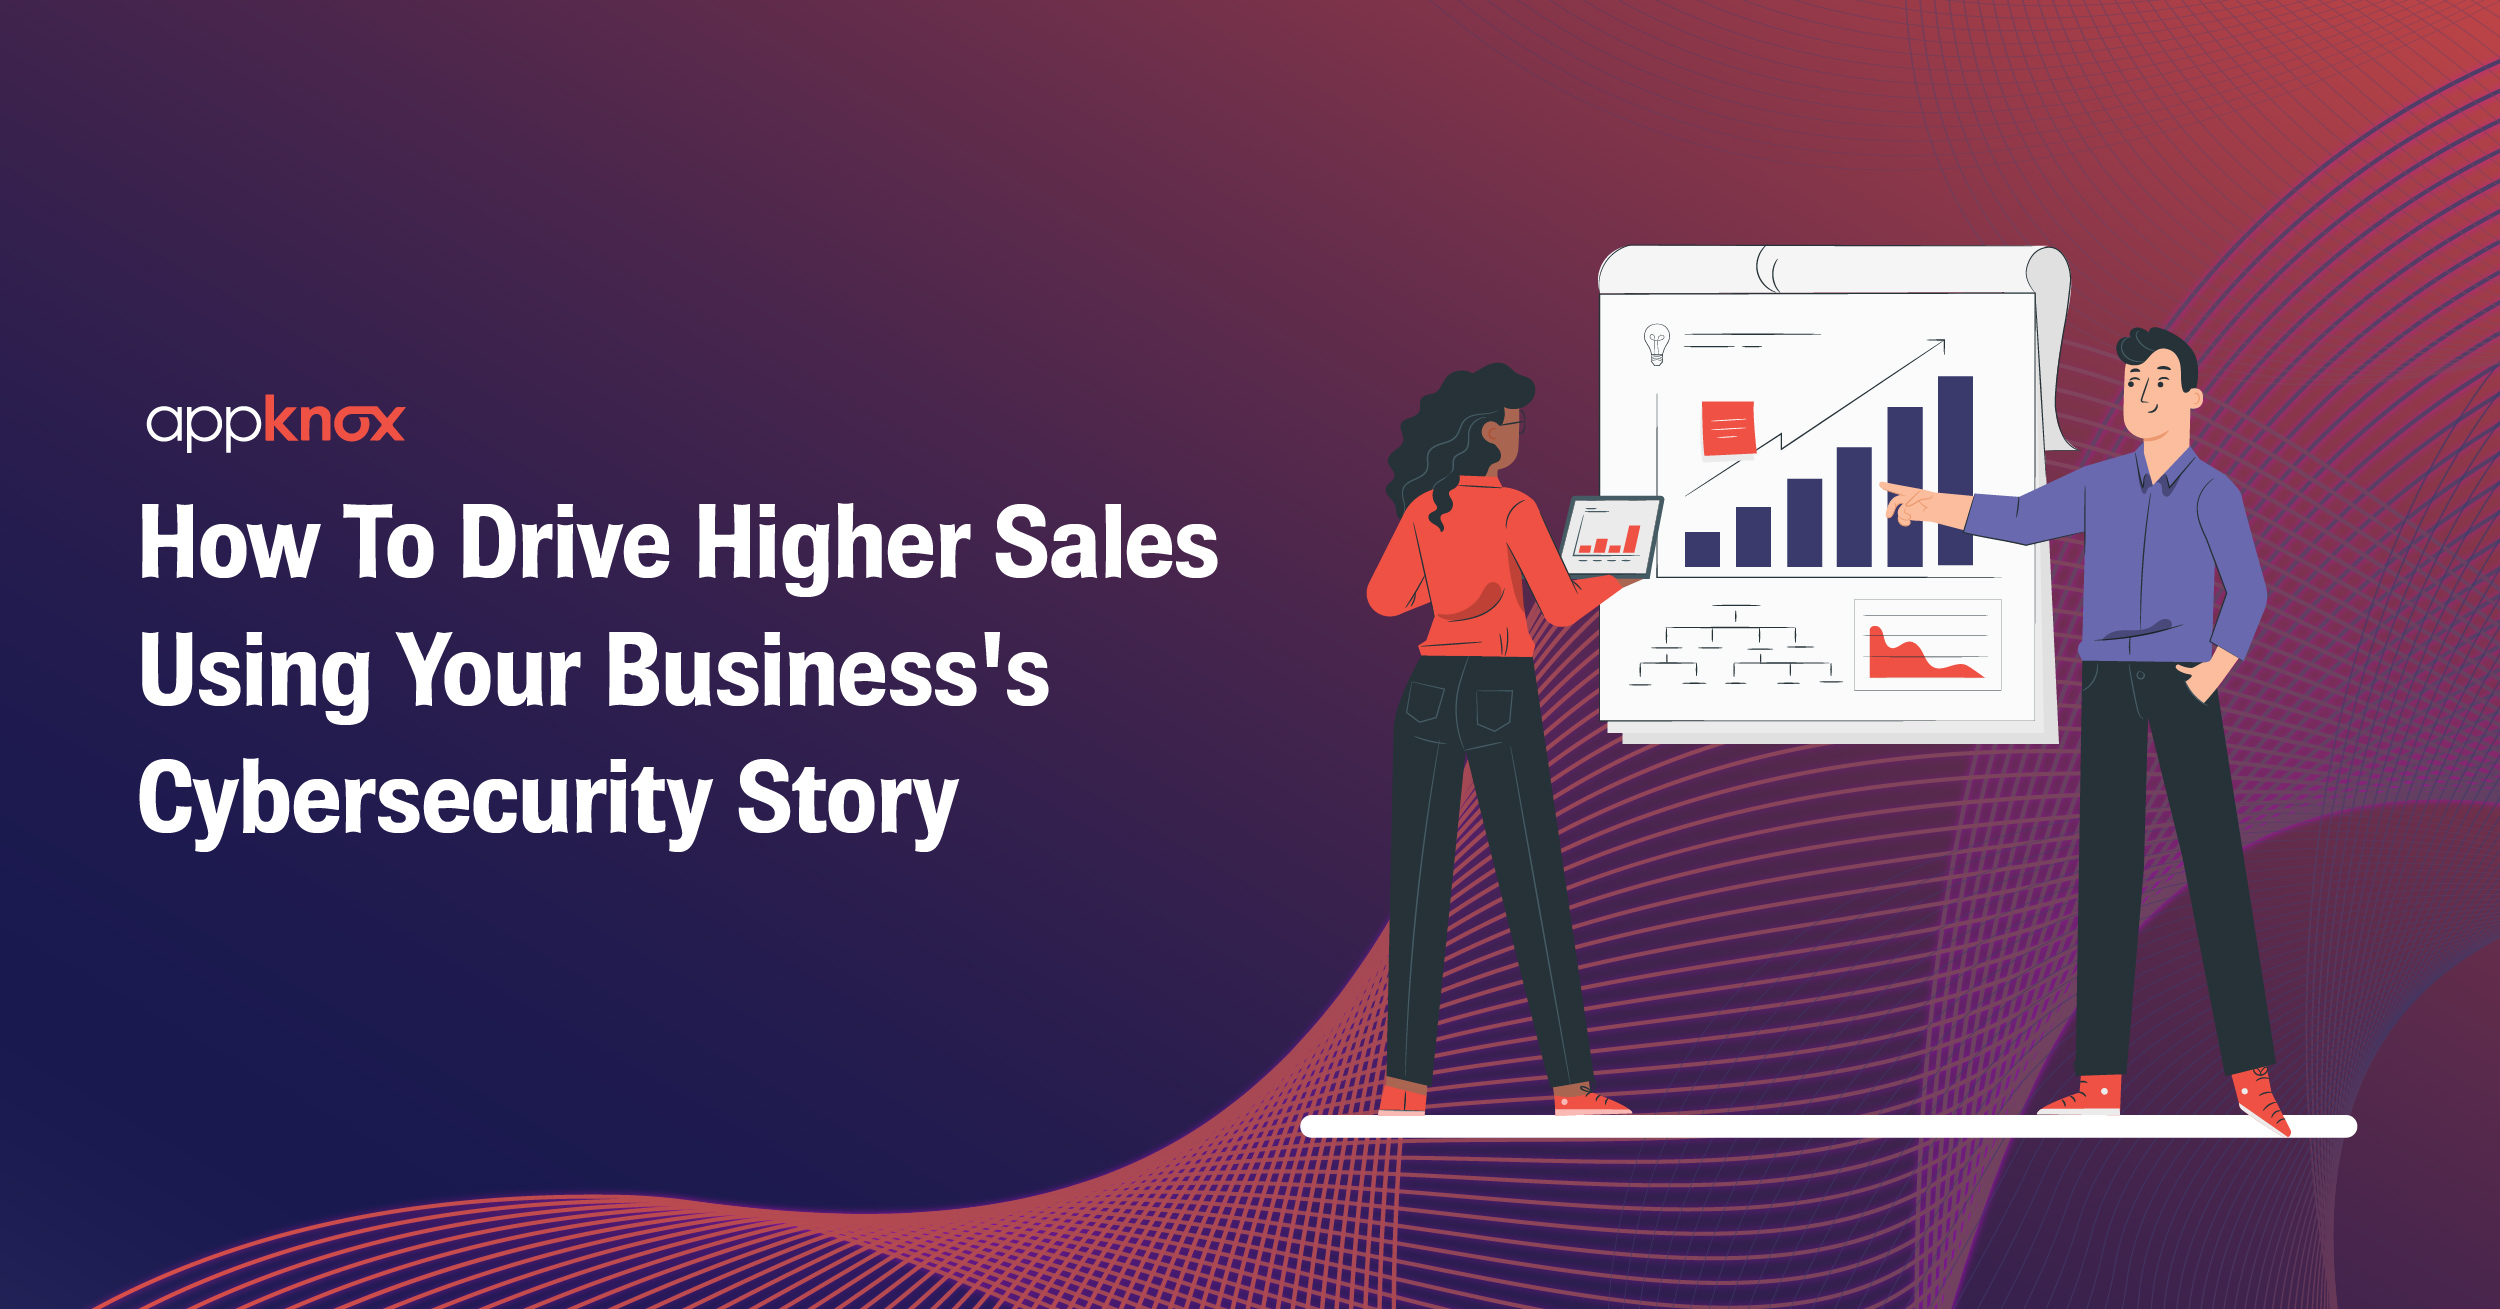 How To Drive Higher Sales Using Your Business's Cybersecurity Story